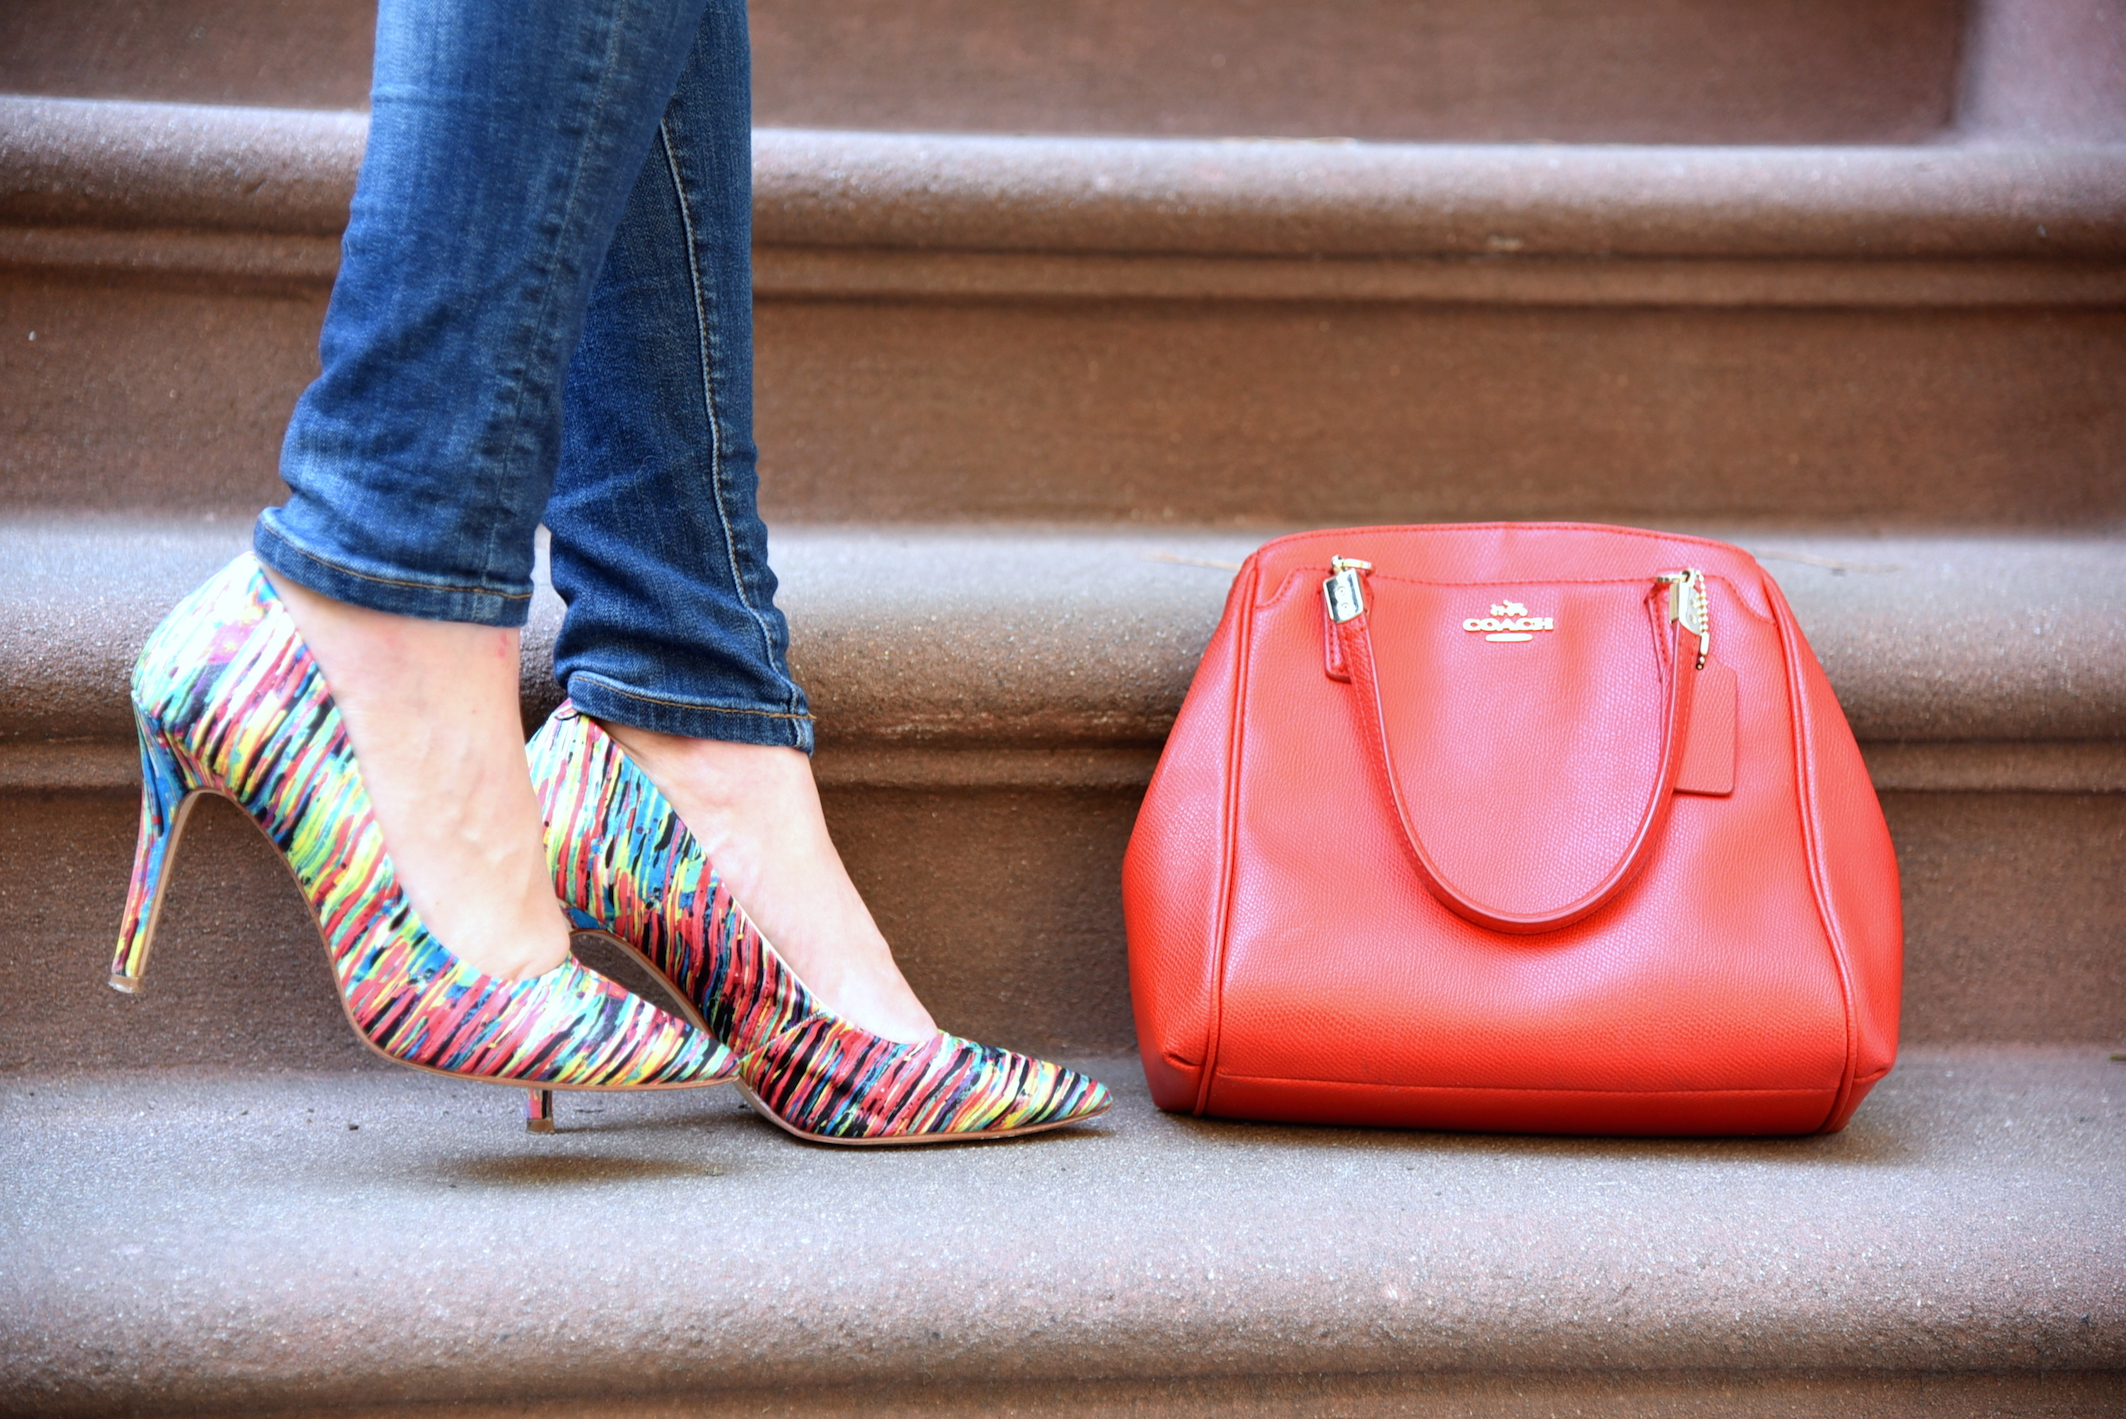 shoes of the day, nyc fashion blogger